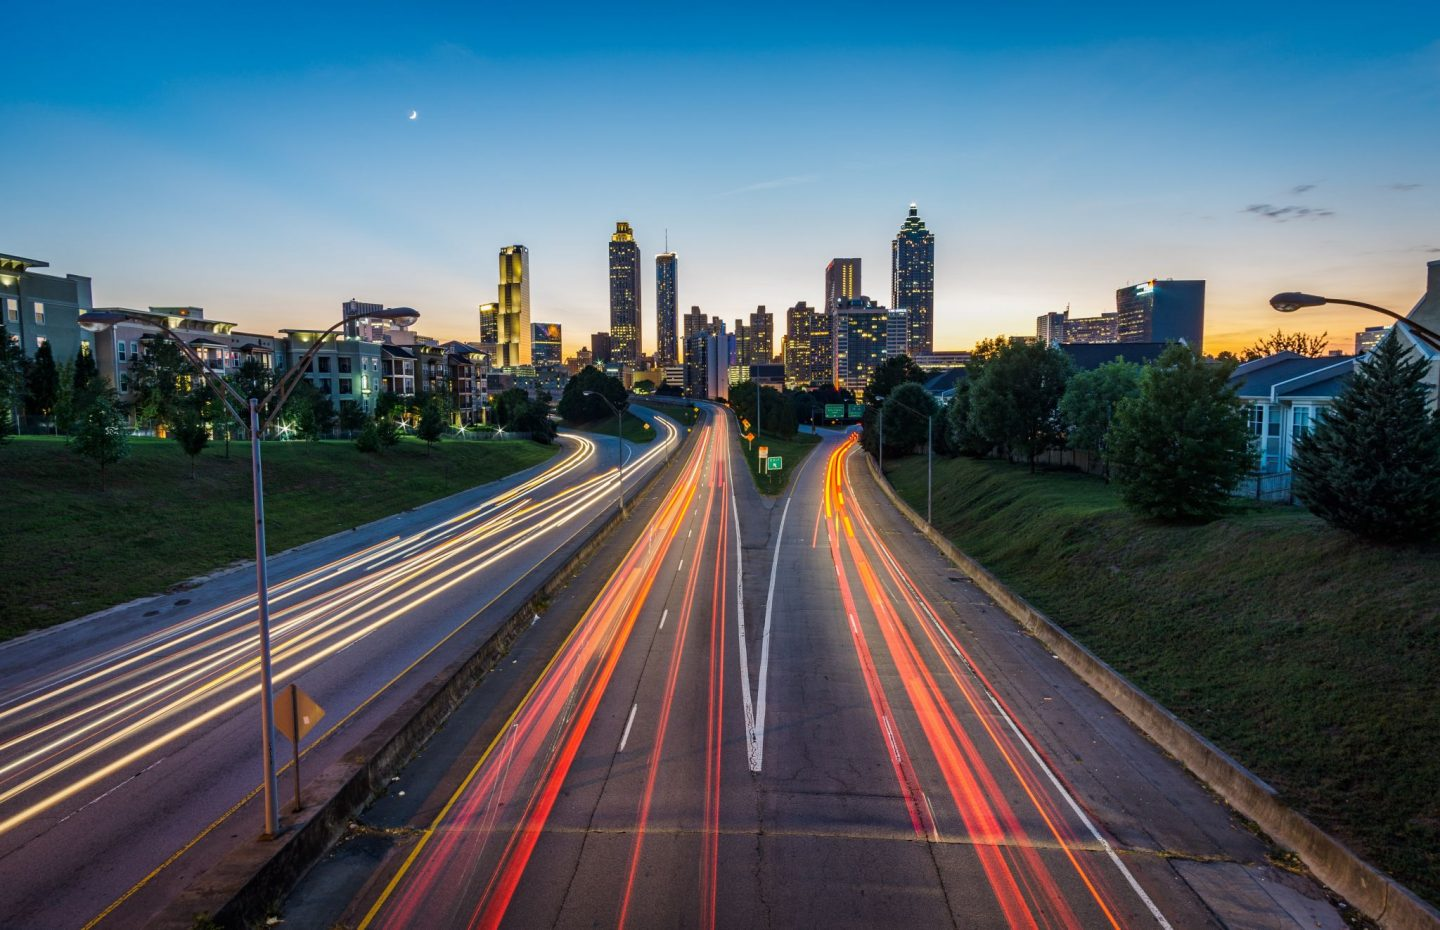 STAYING IN ATLANTA: BEST HOTELS AND NEIGHBOURHOODS FOR TOURIST